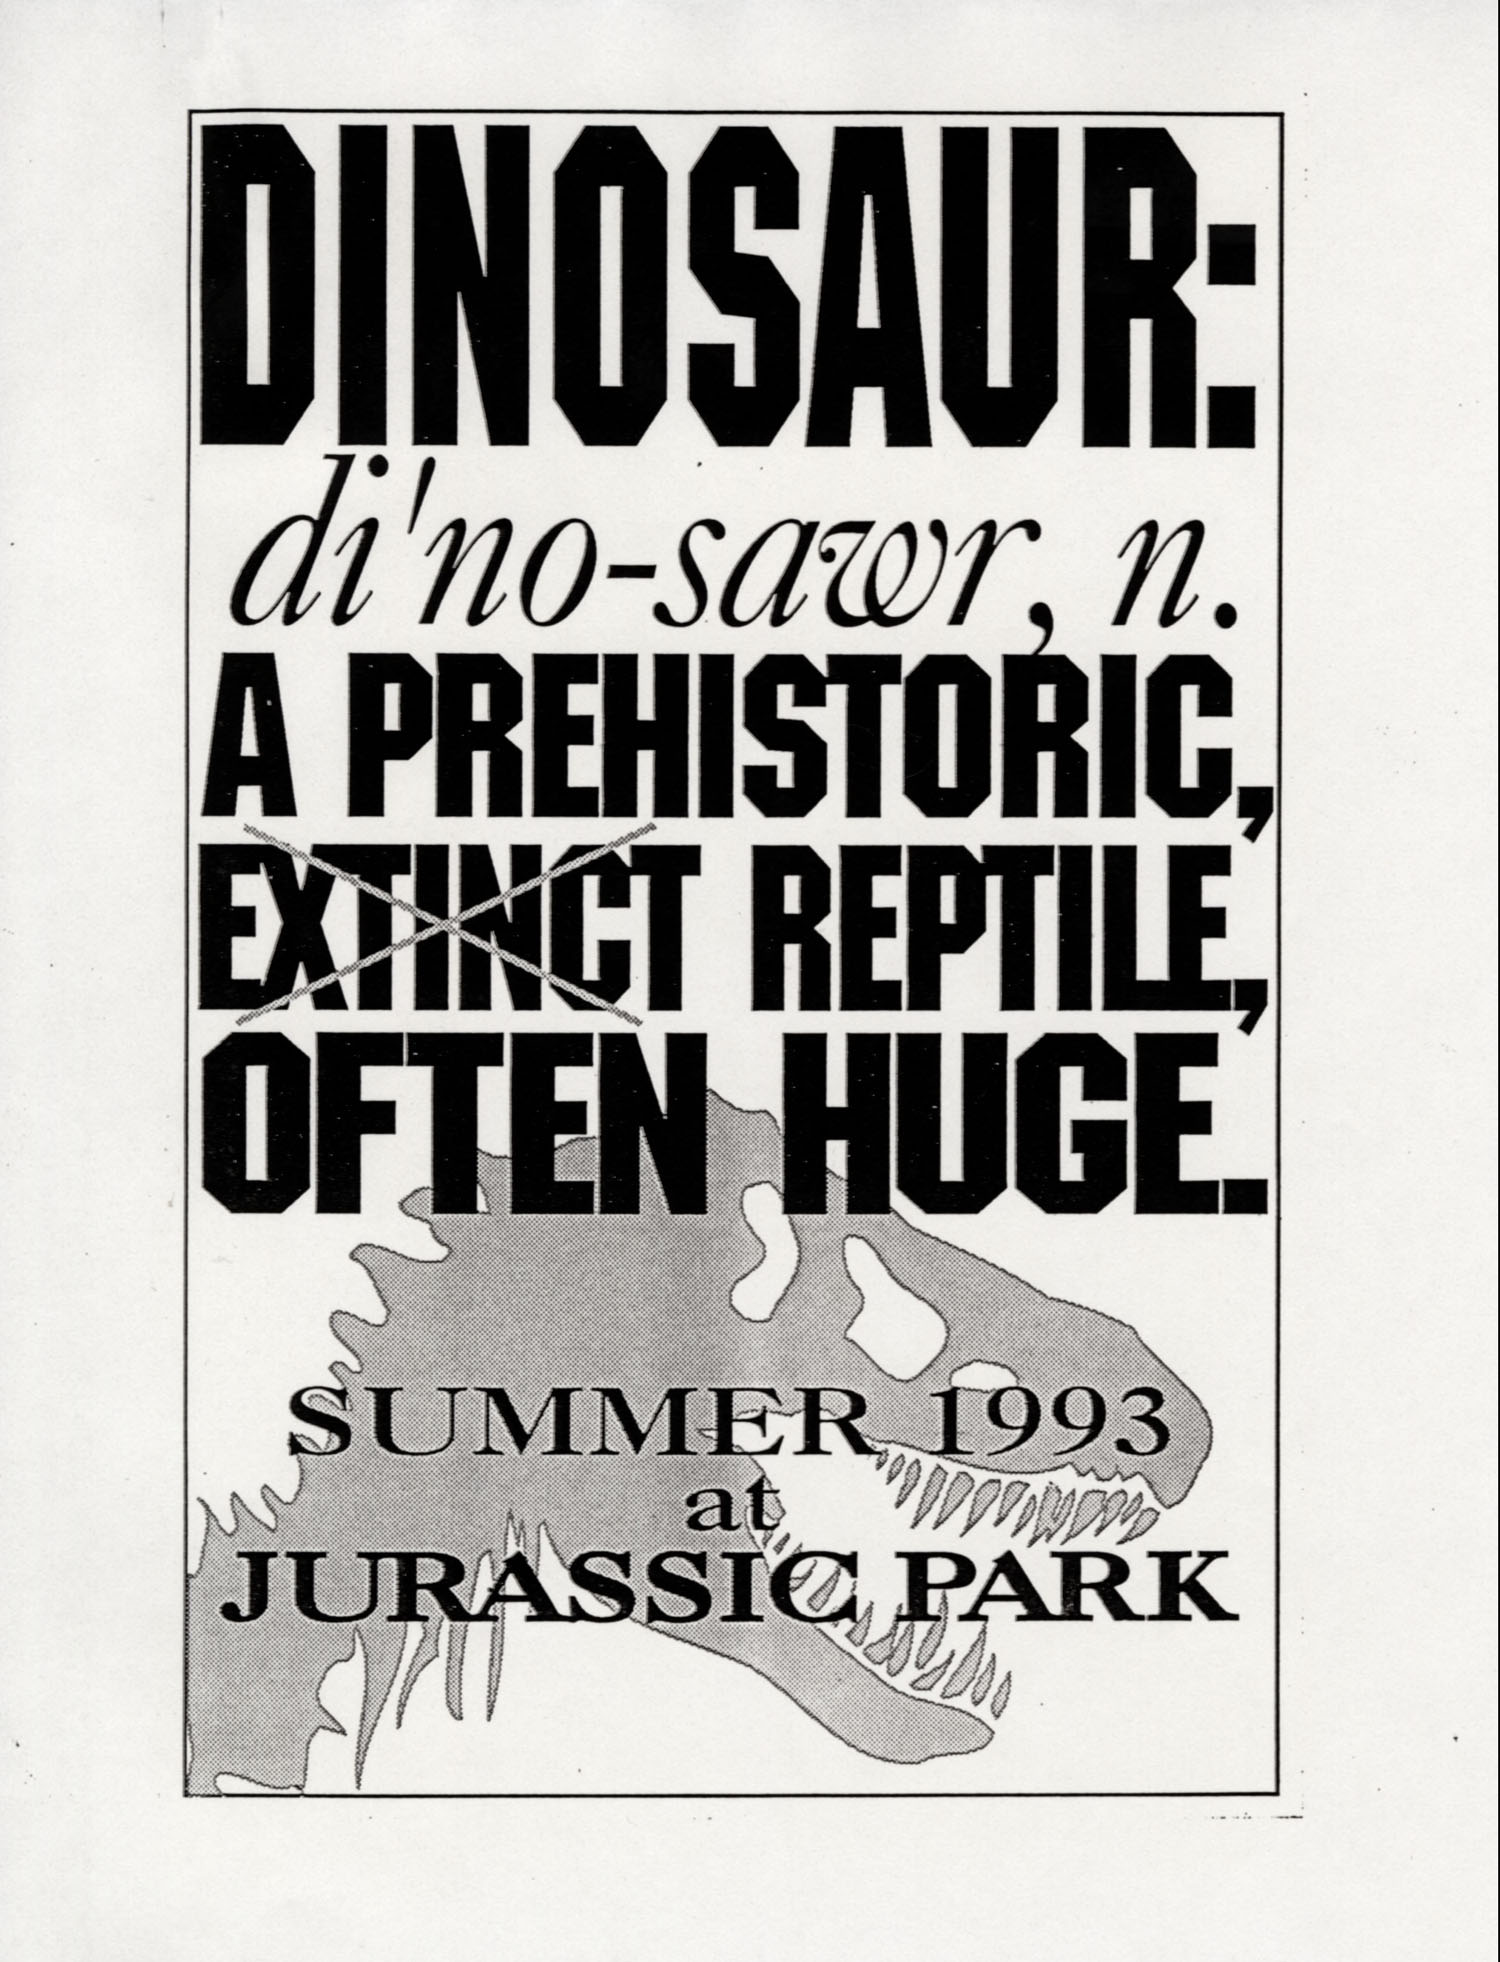 John Alvin   Jurassic Park poster   4 Exclusive: Over a Dozen Never Before Seen Jurassic Park Posters From Famous Artist John Alvin